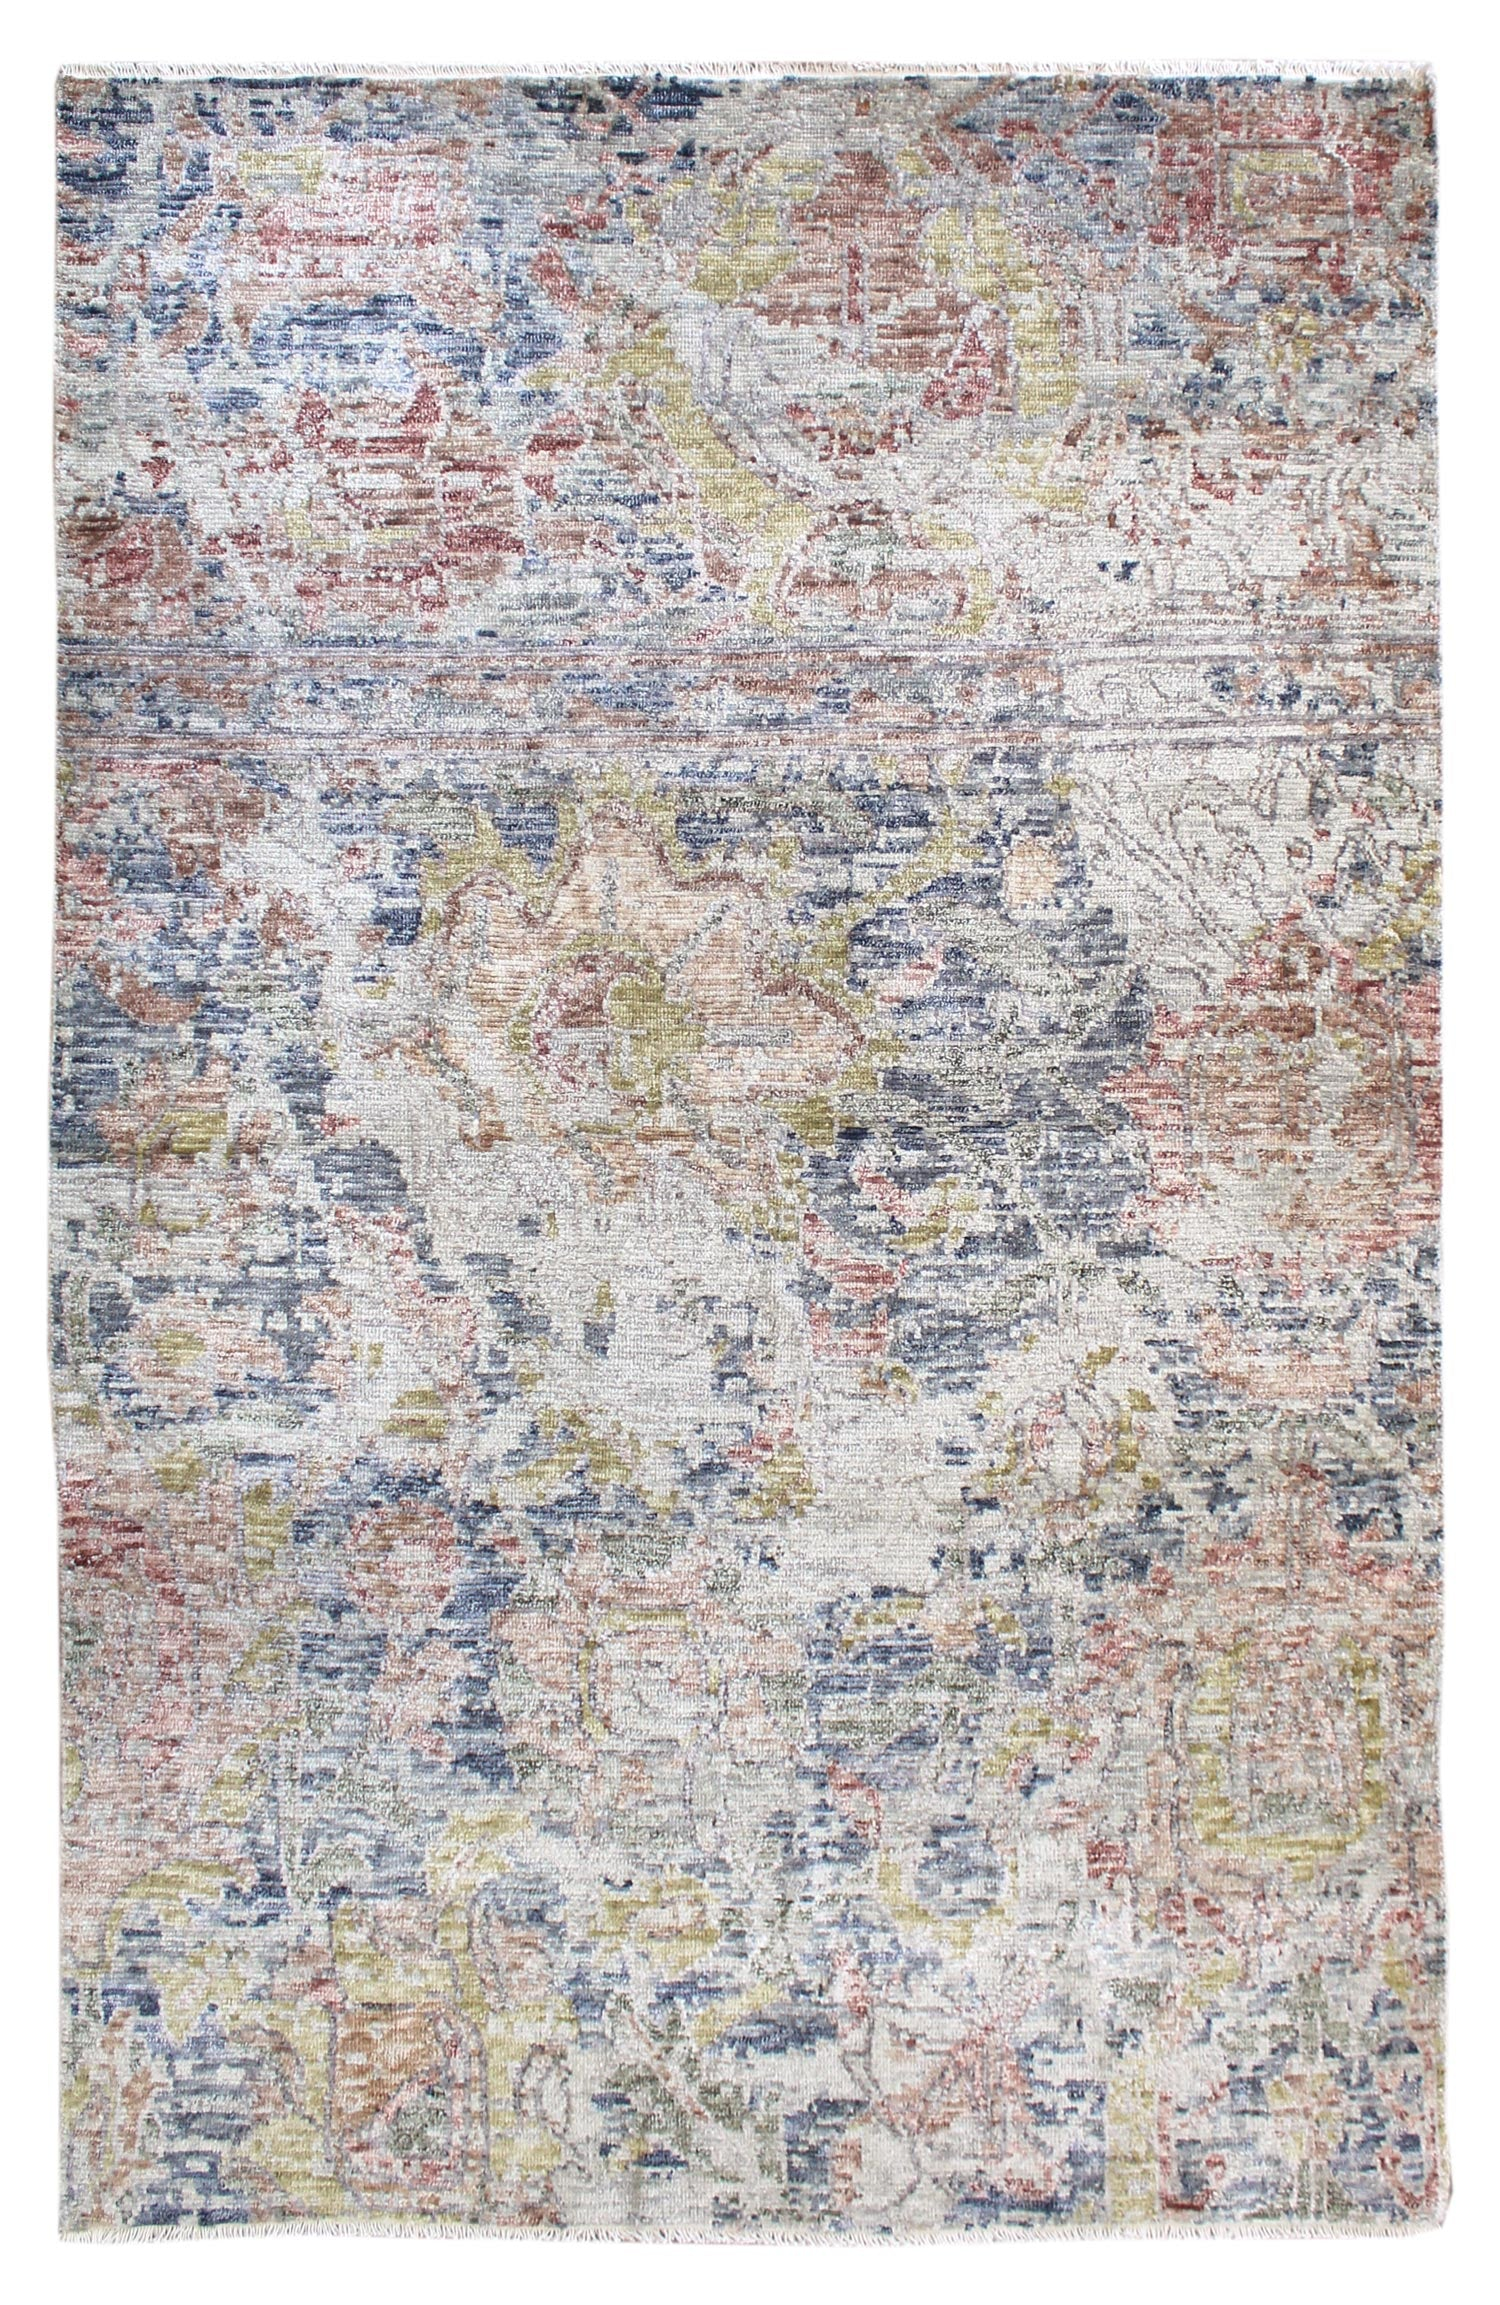 Byblos Handwoven Transitional Rug